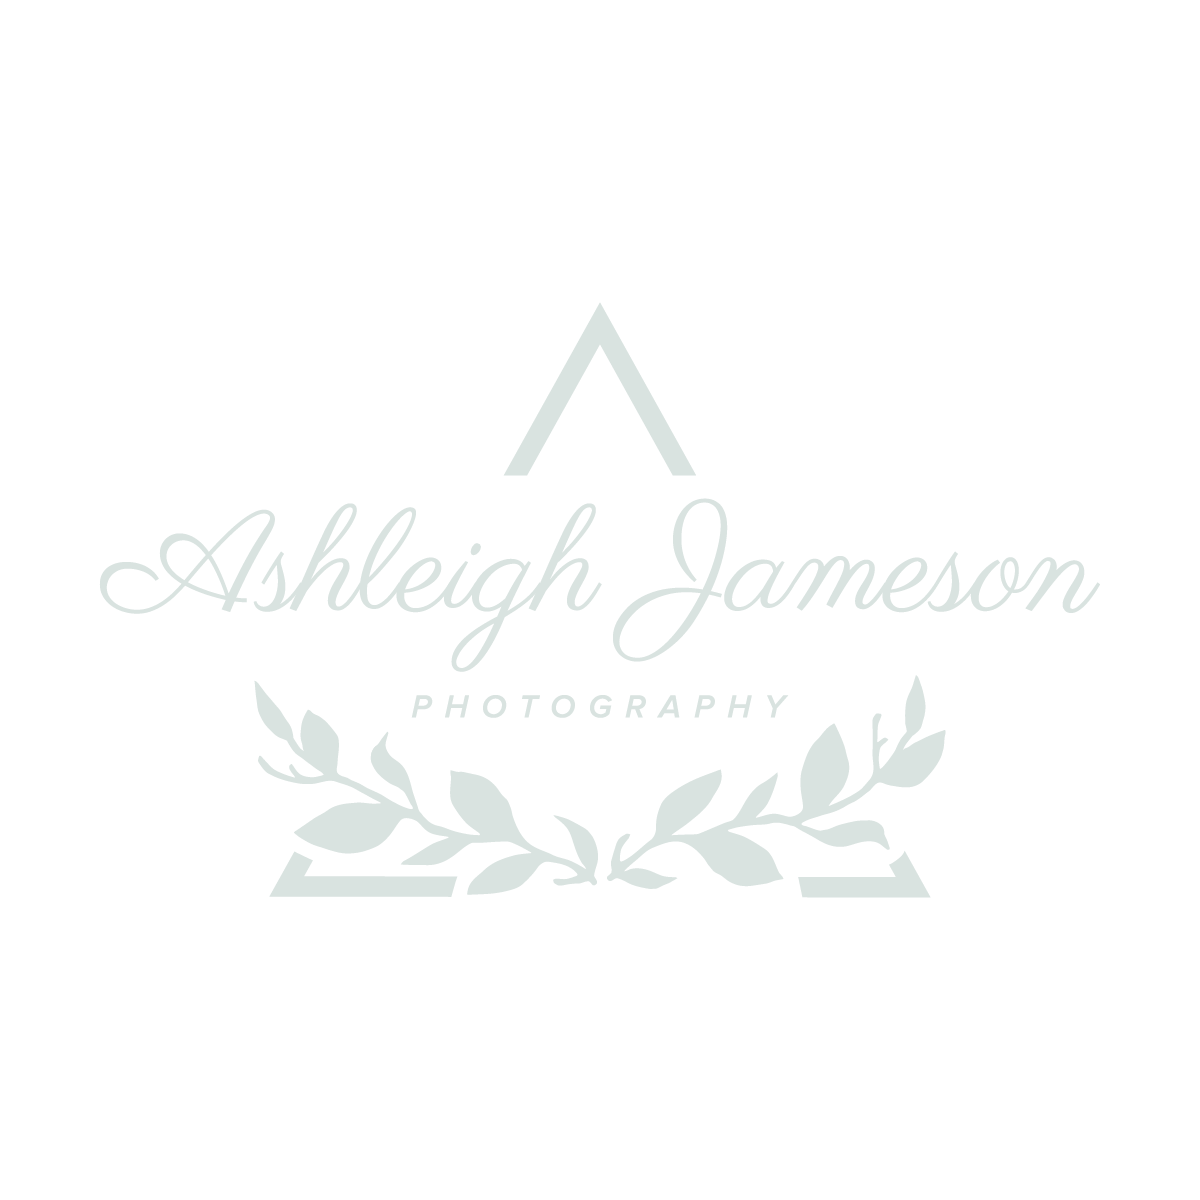 Ashleigh Jameson Photography